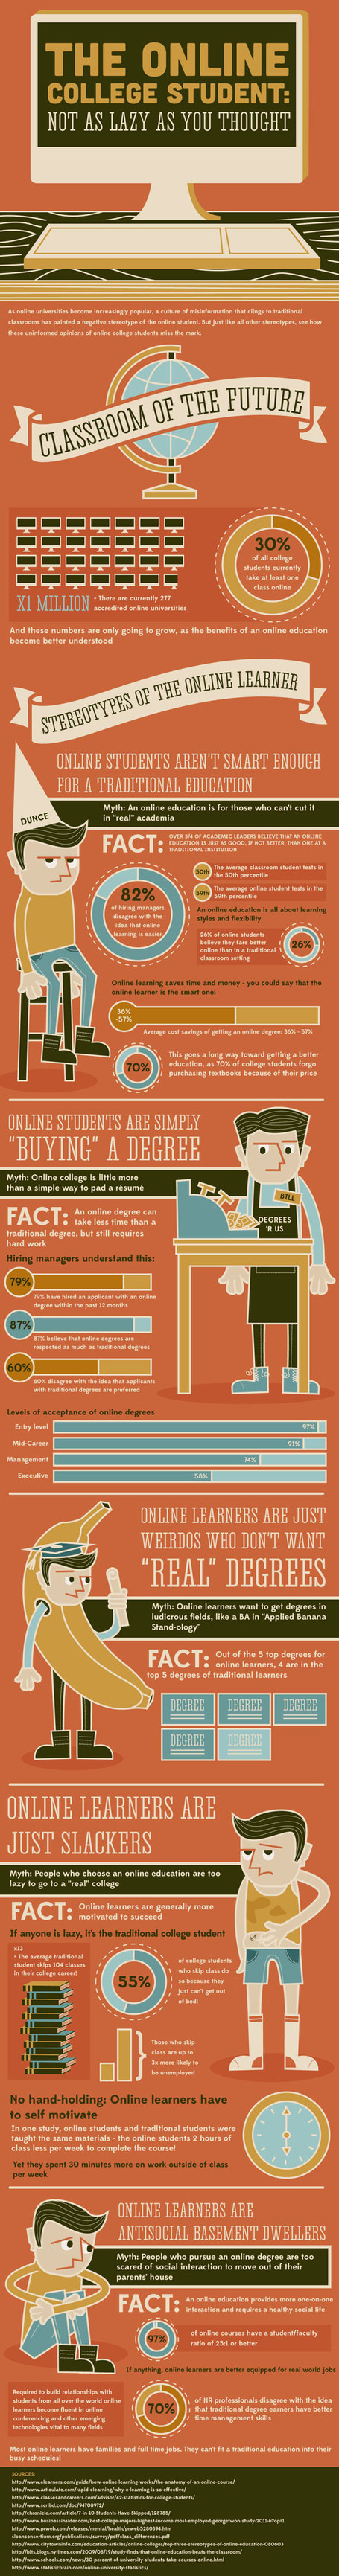 Do you have the wrong impression about online learning? [Infographic] | Learning, Education, and Neuroscience | Scoop.it